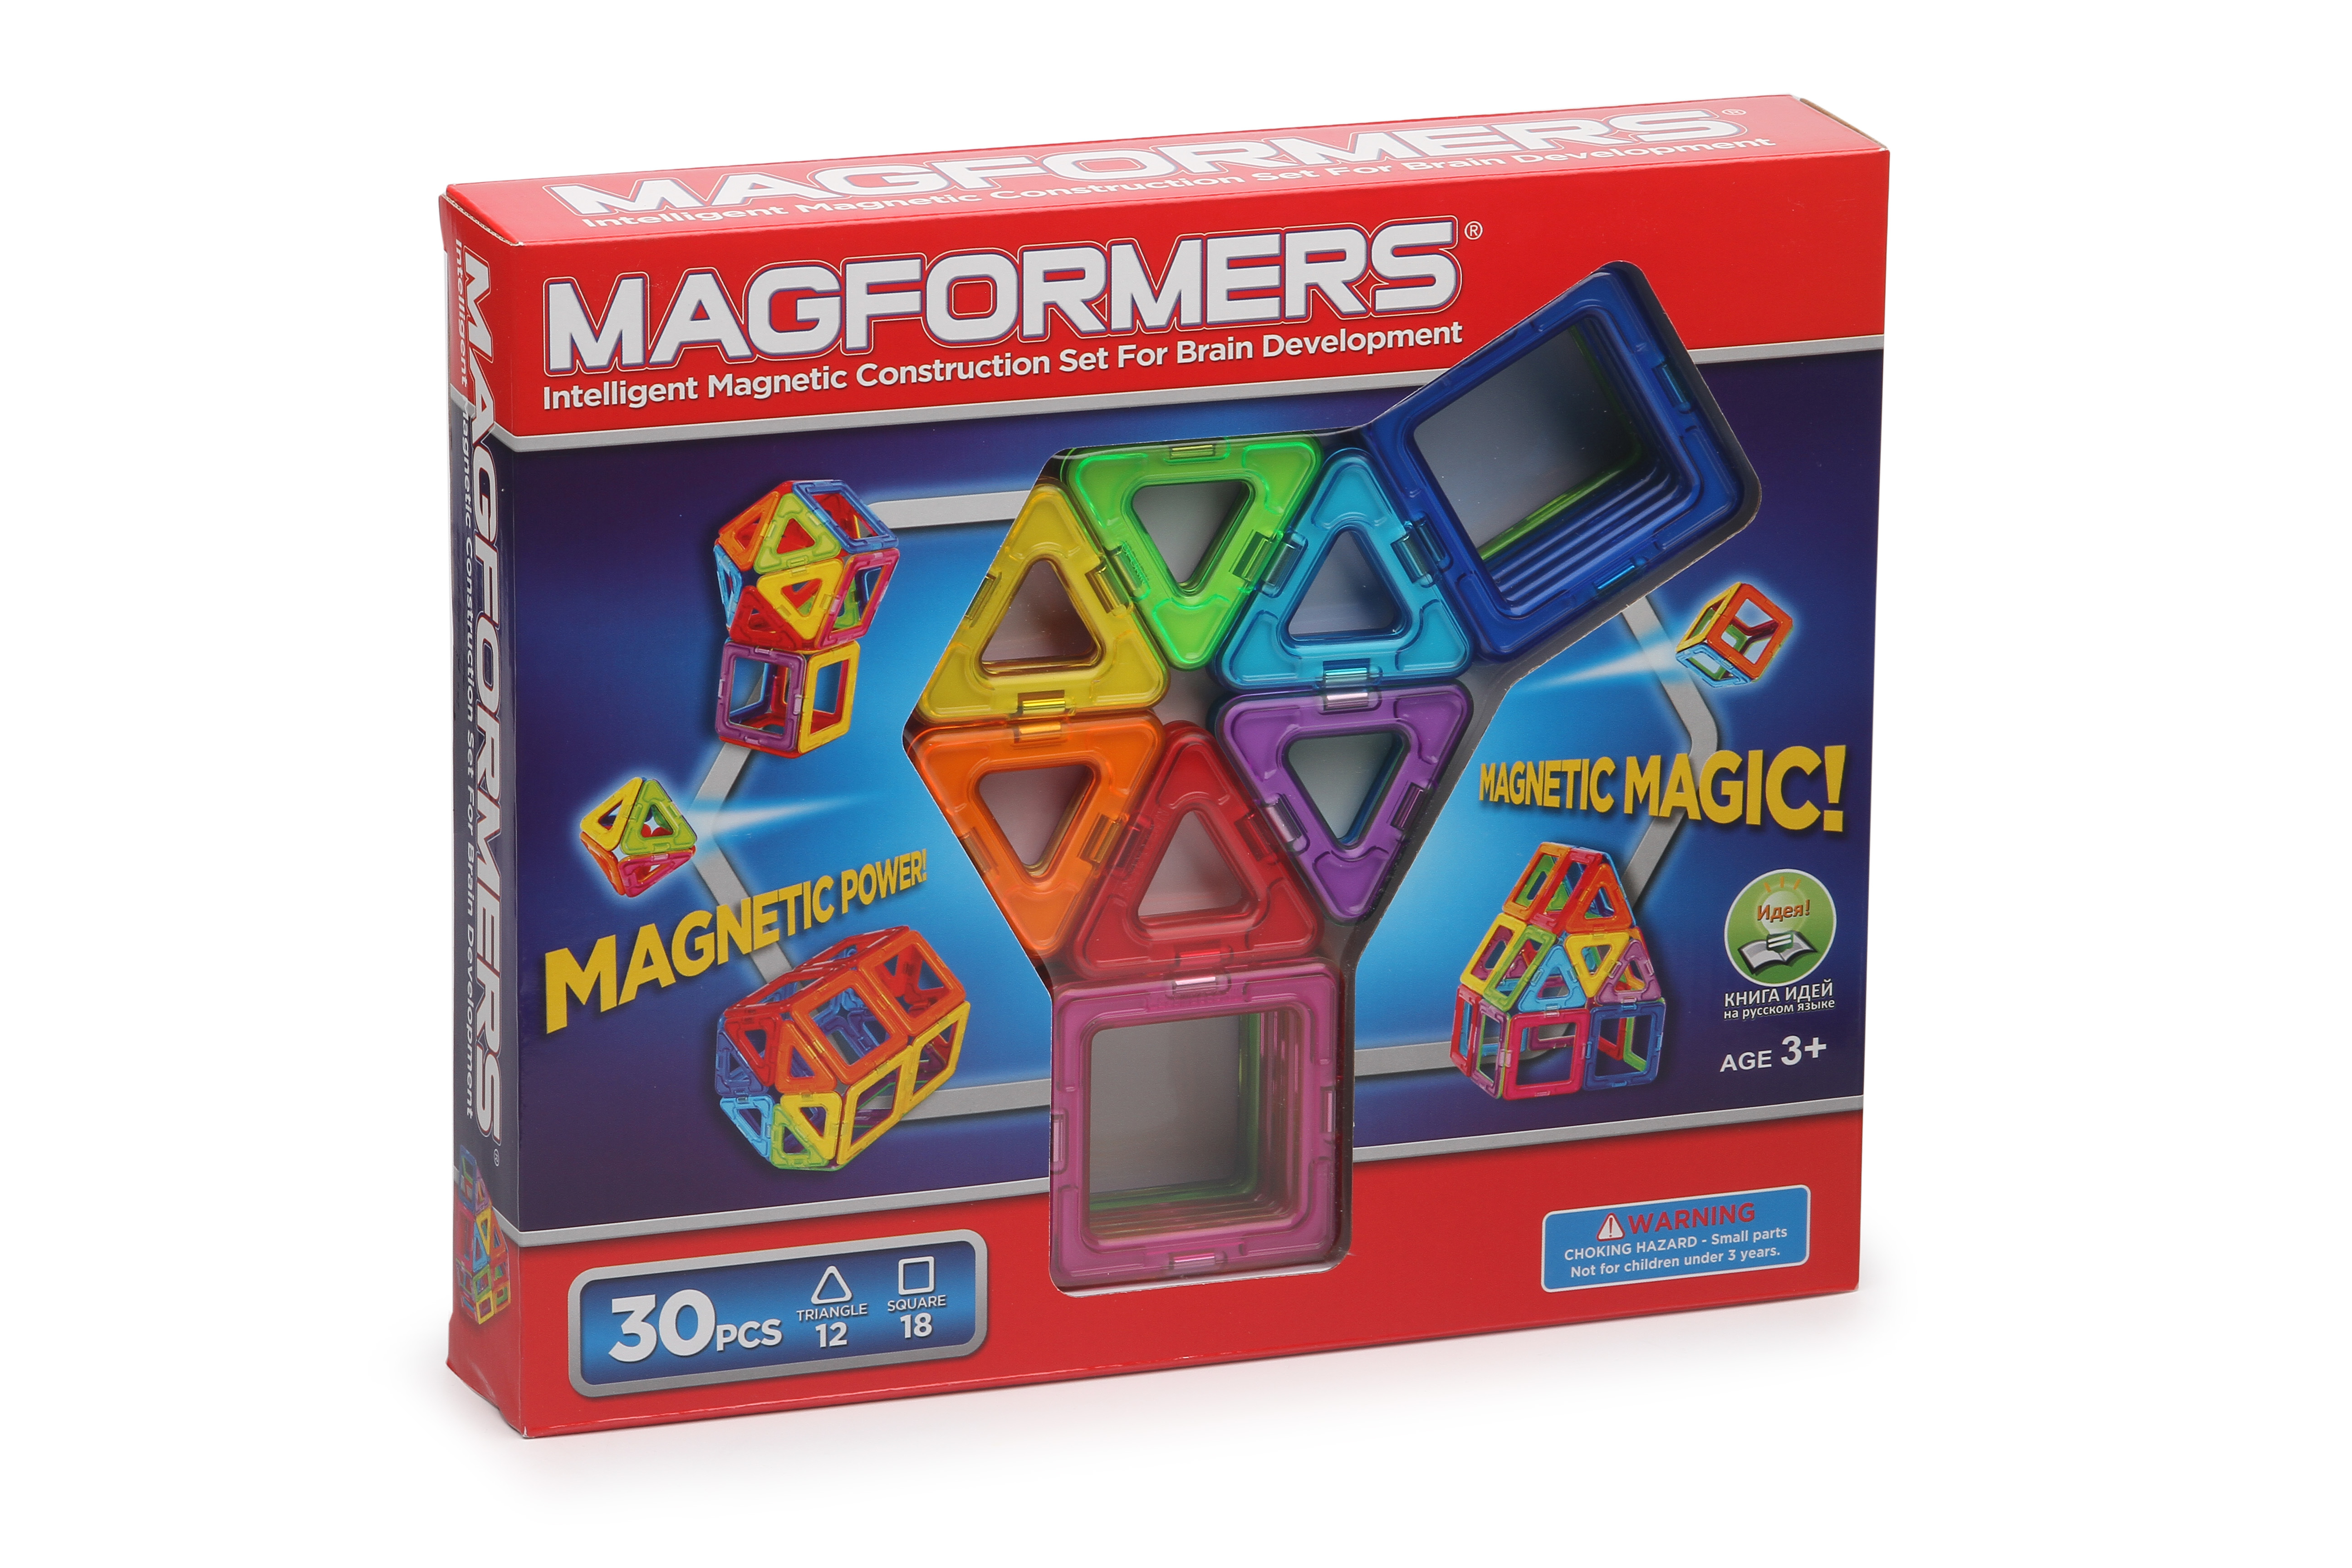 ����������� Magformers ������ 30 ���������